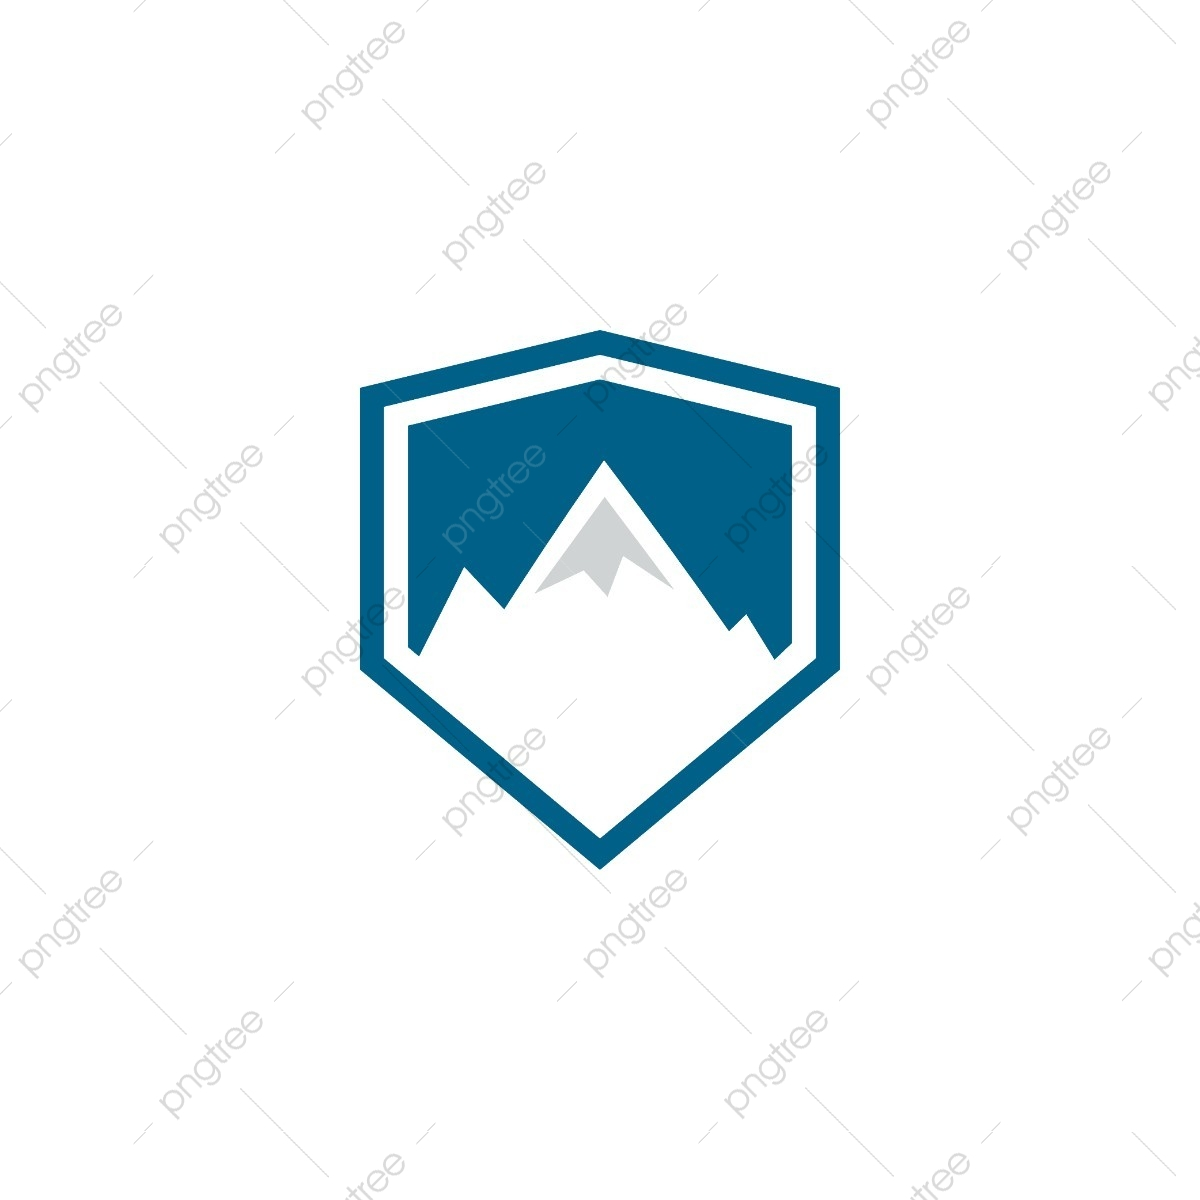 Mountain Logo On A Shield Emblem Graphic Template, Abstract.